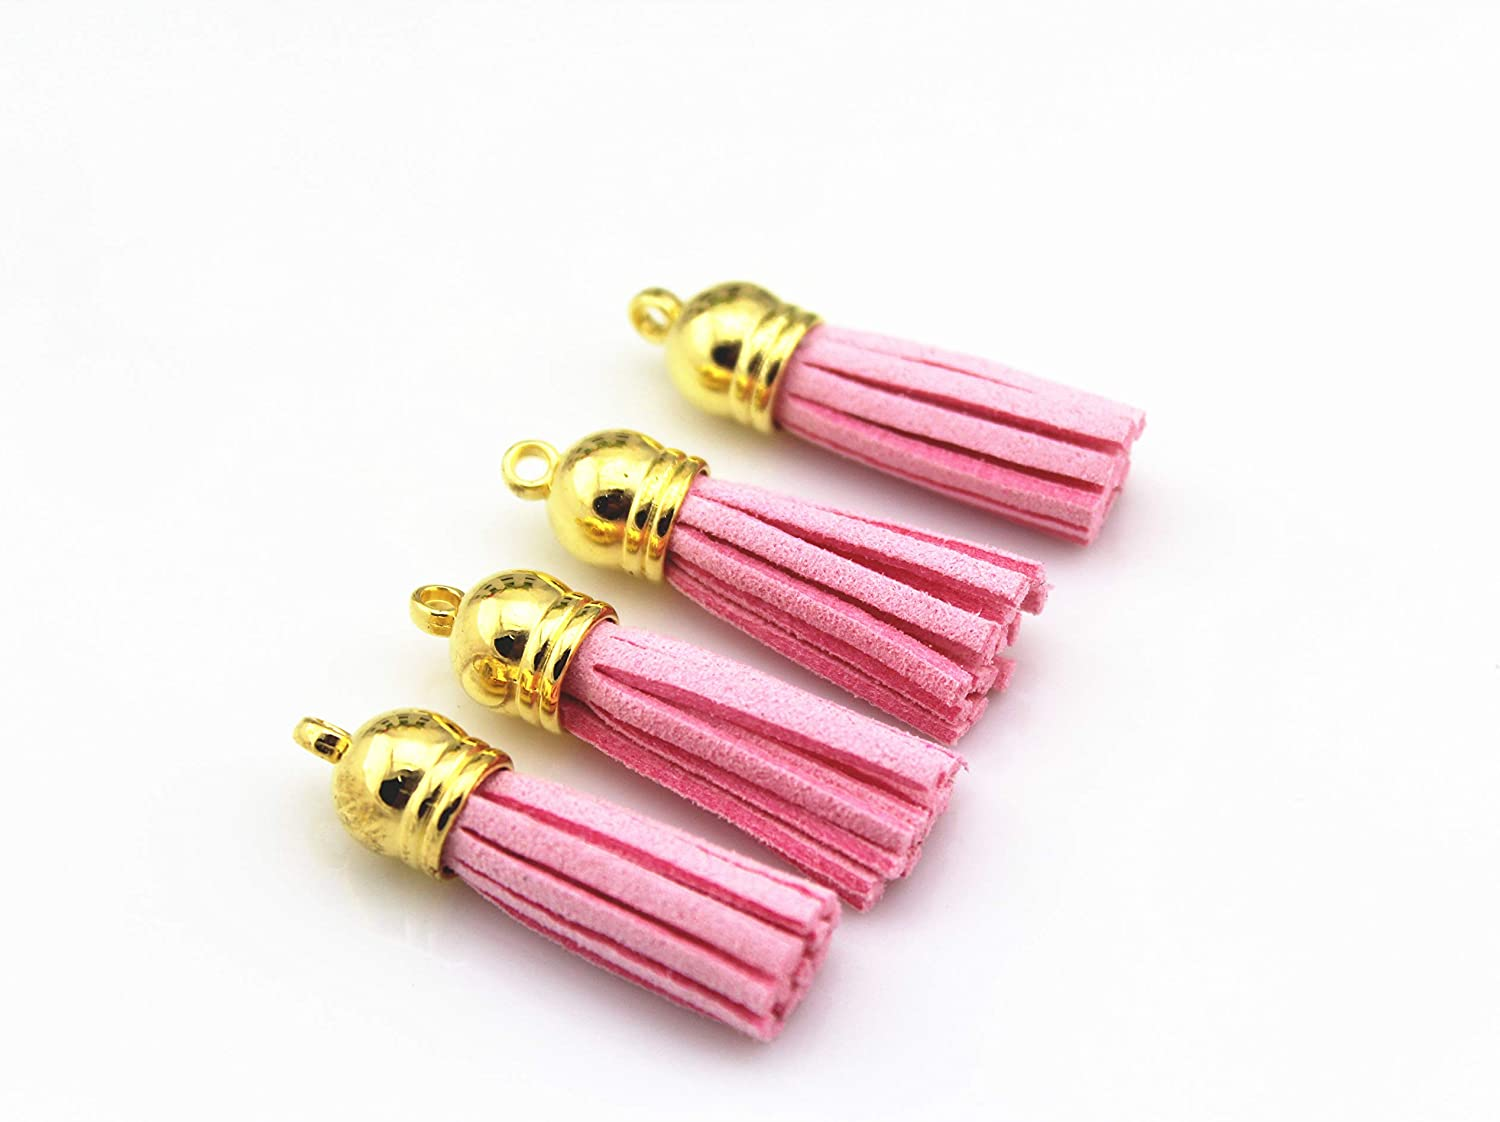 QIANHAILIZZ 40 Gold Cap 1-1/2 Inch Faux Suede Tassel Tassel Charm with CCB Cap for Keychain Cellphone Straps Jewelry Charms LAS1021 (Pink)